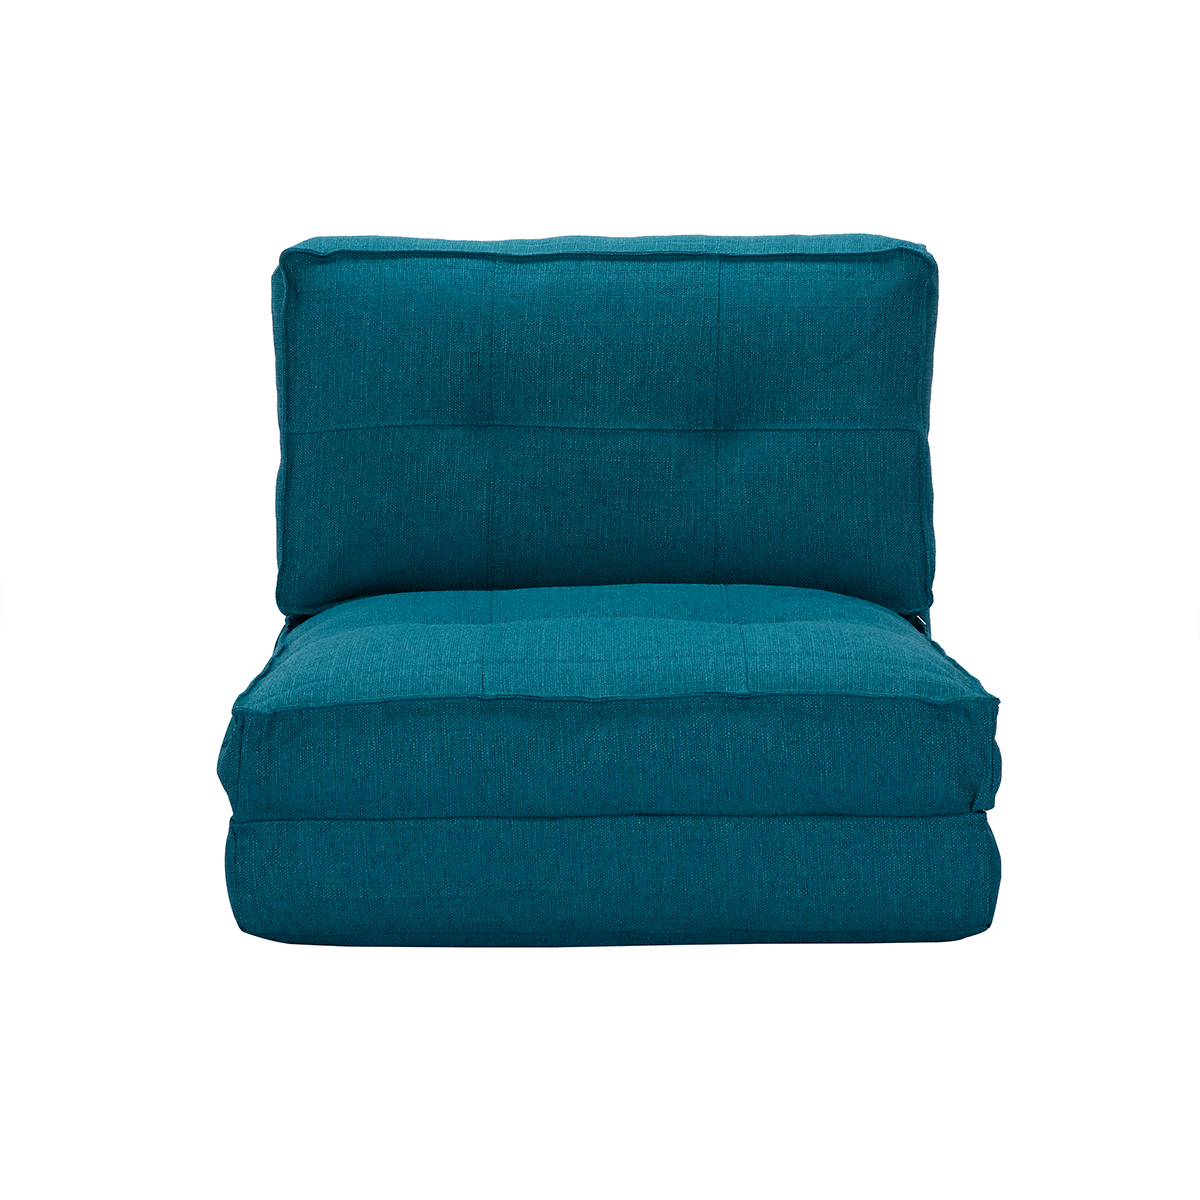 Poltrona design blu SALLY